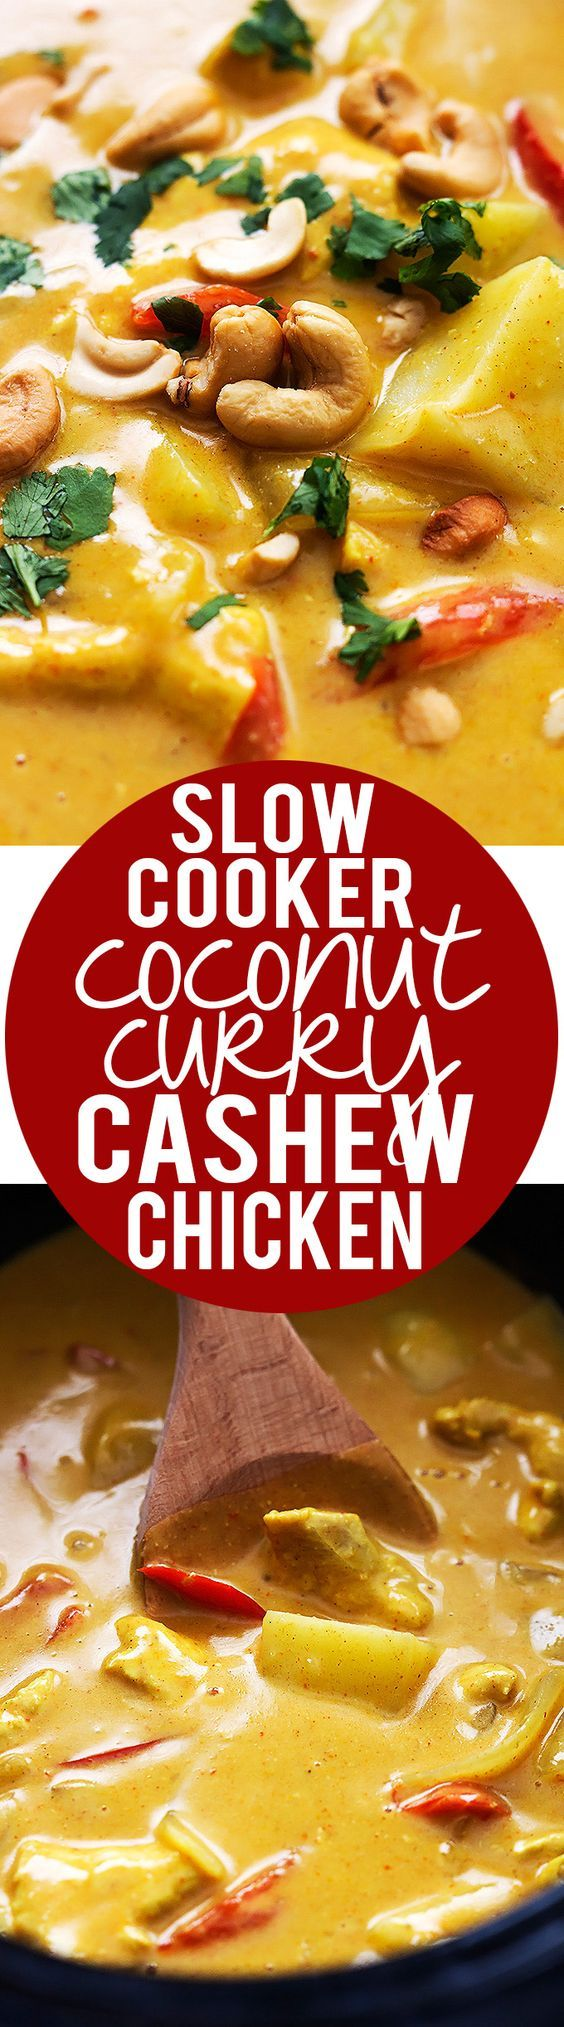 Slow Cooker Coconut Curry Cashew Chicken Recipe plus 49 of the most pinned crock pot recipes